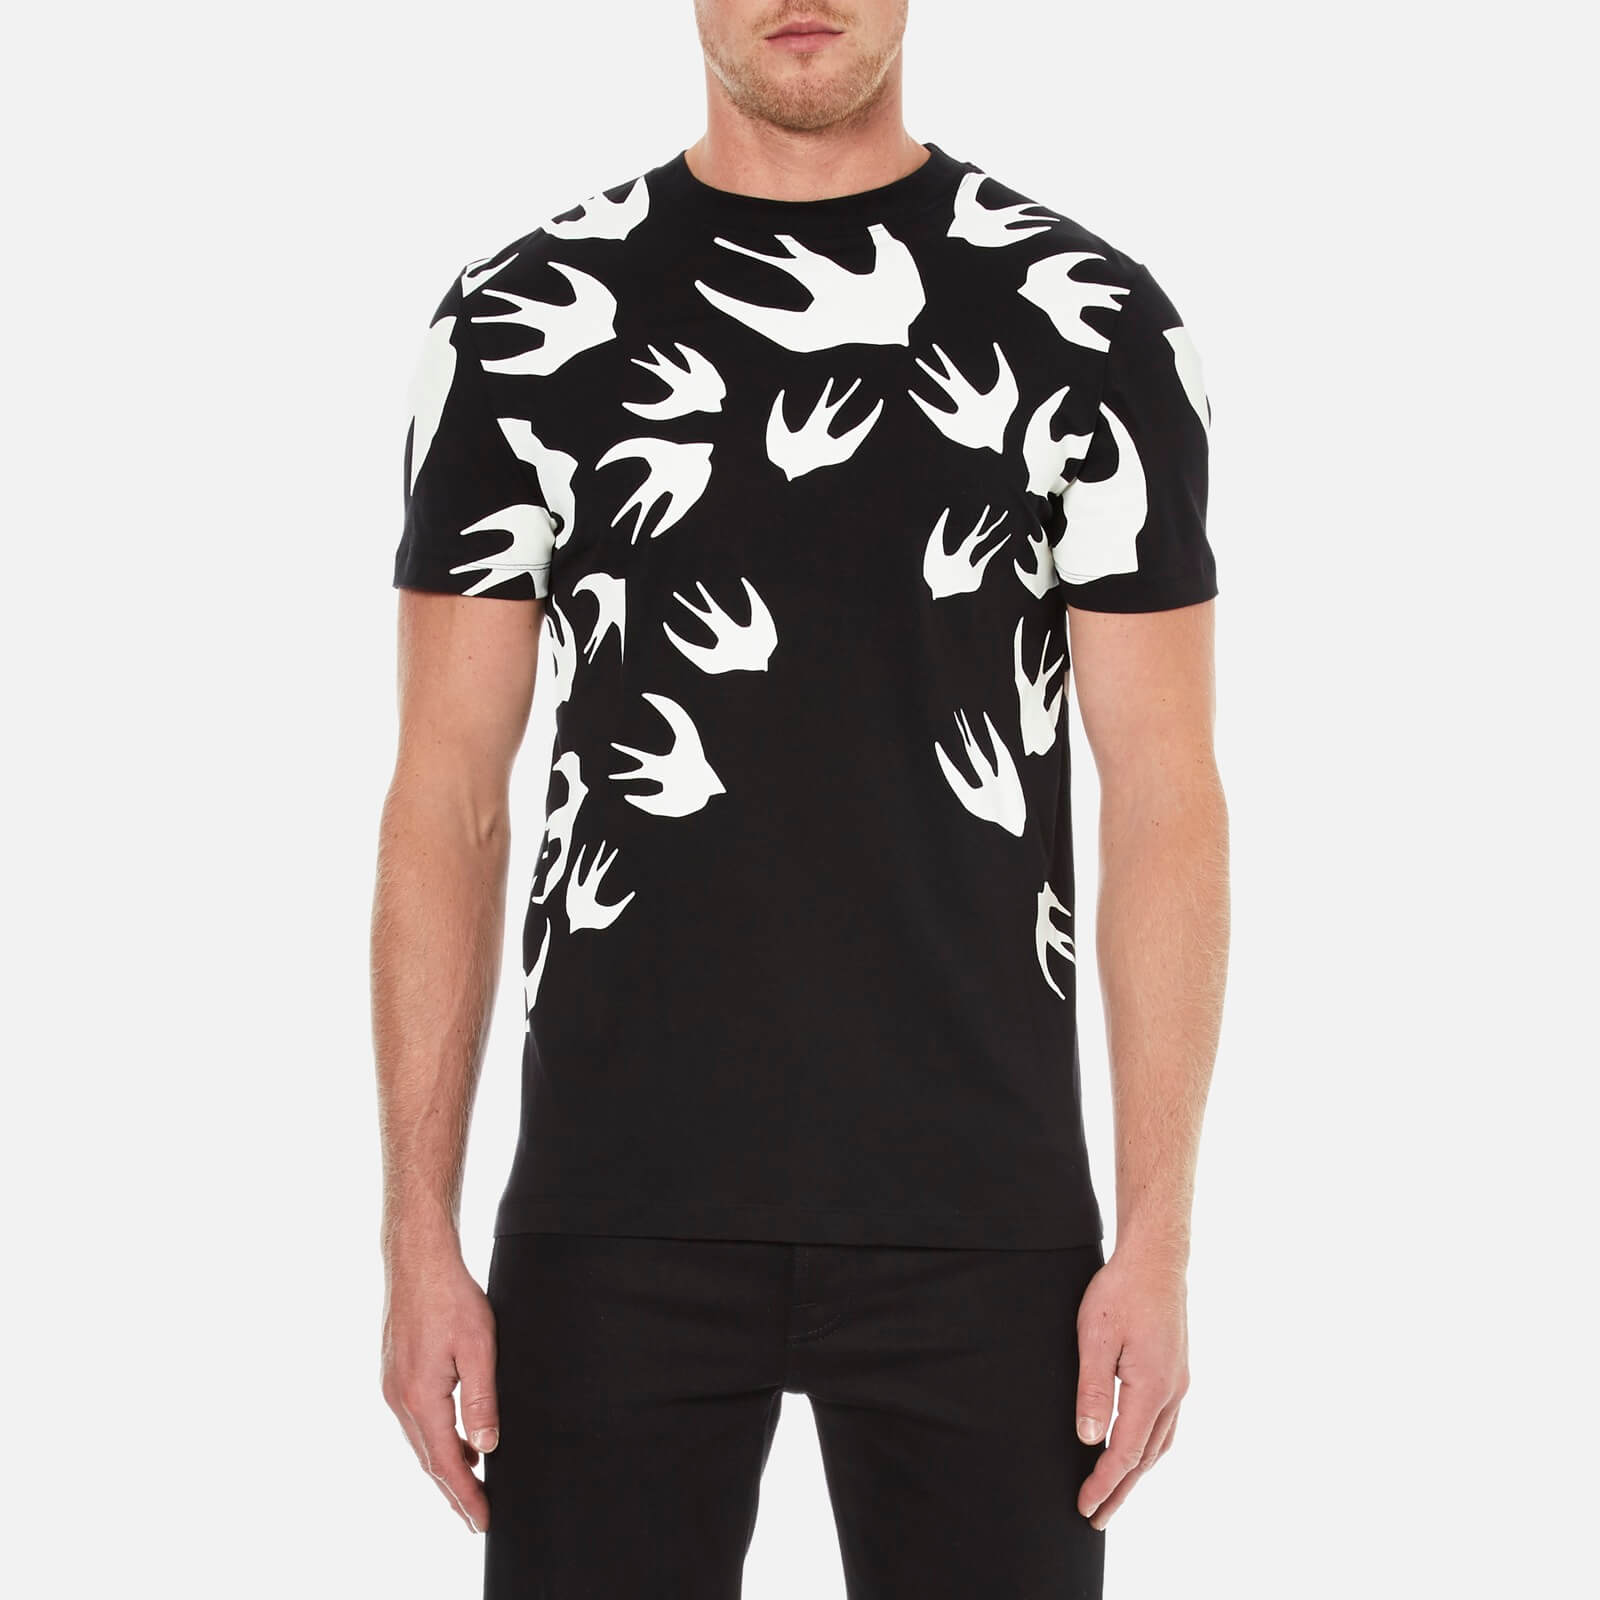 6eb729947765 ... McQ Alexander McQueen Men s Swallow Swarm Pigment T-Shirt - Darkest  Black